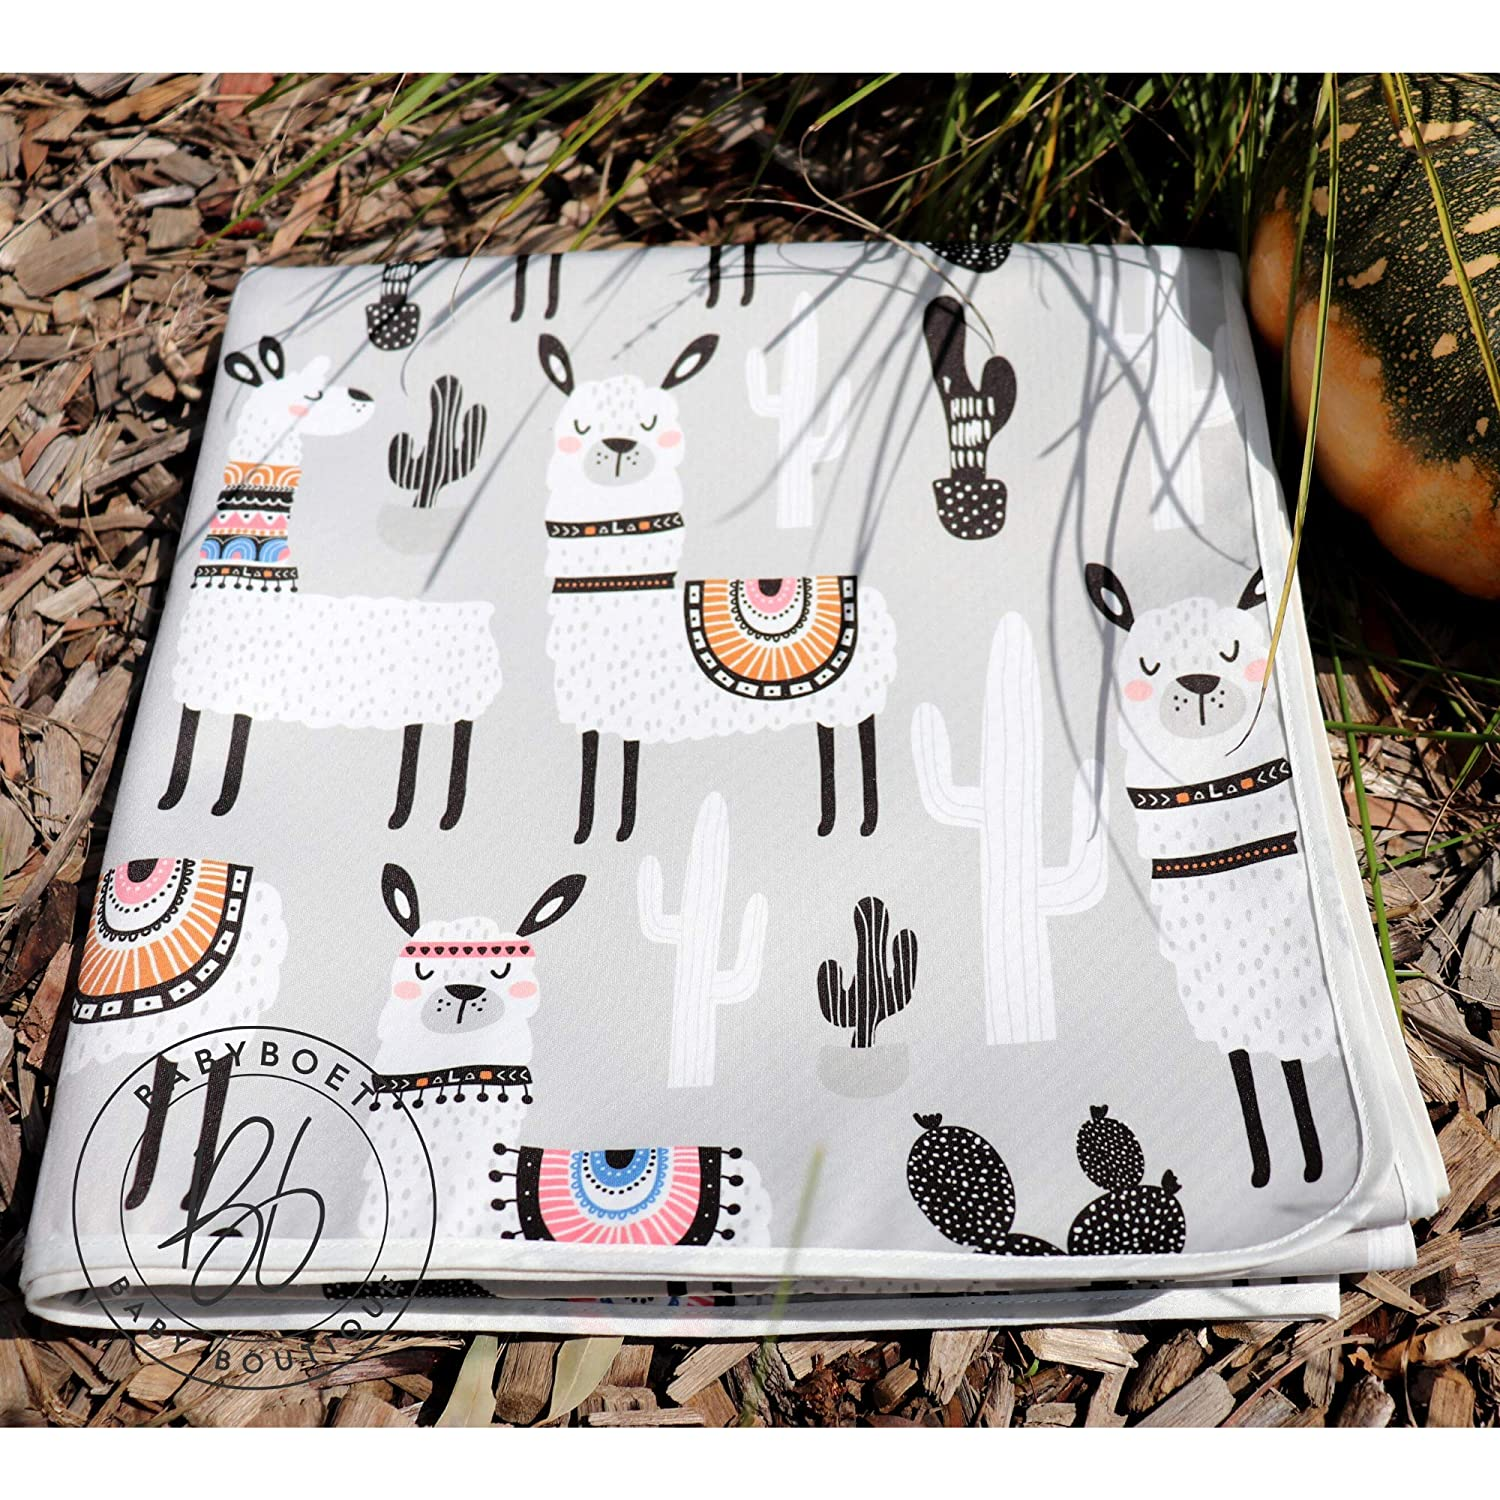 """BABYBOET Splat Mat for Baby Under High Chair Floor Mat Protects Wood Waterproof Triple Layer Baby Mat with Anti-Skid Backing Deters Bunching and Sliding Vinyl and Carpet from Spills 51/"""" x 51/"""""""